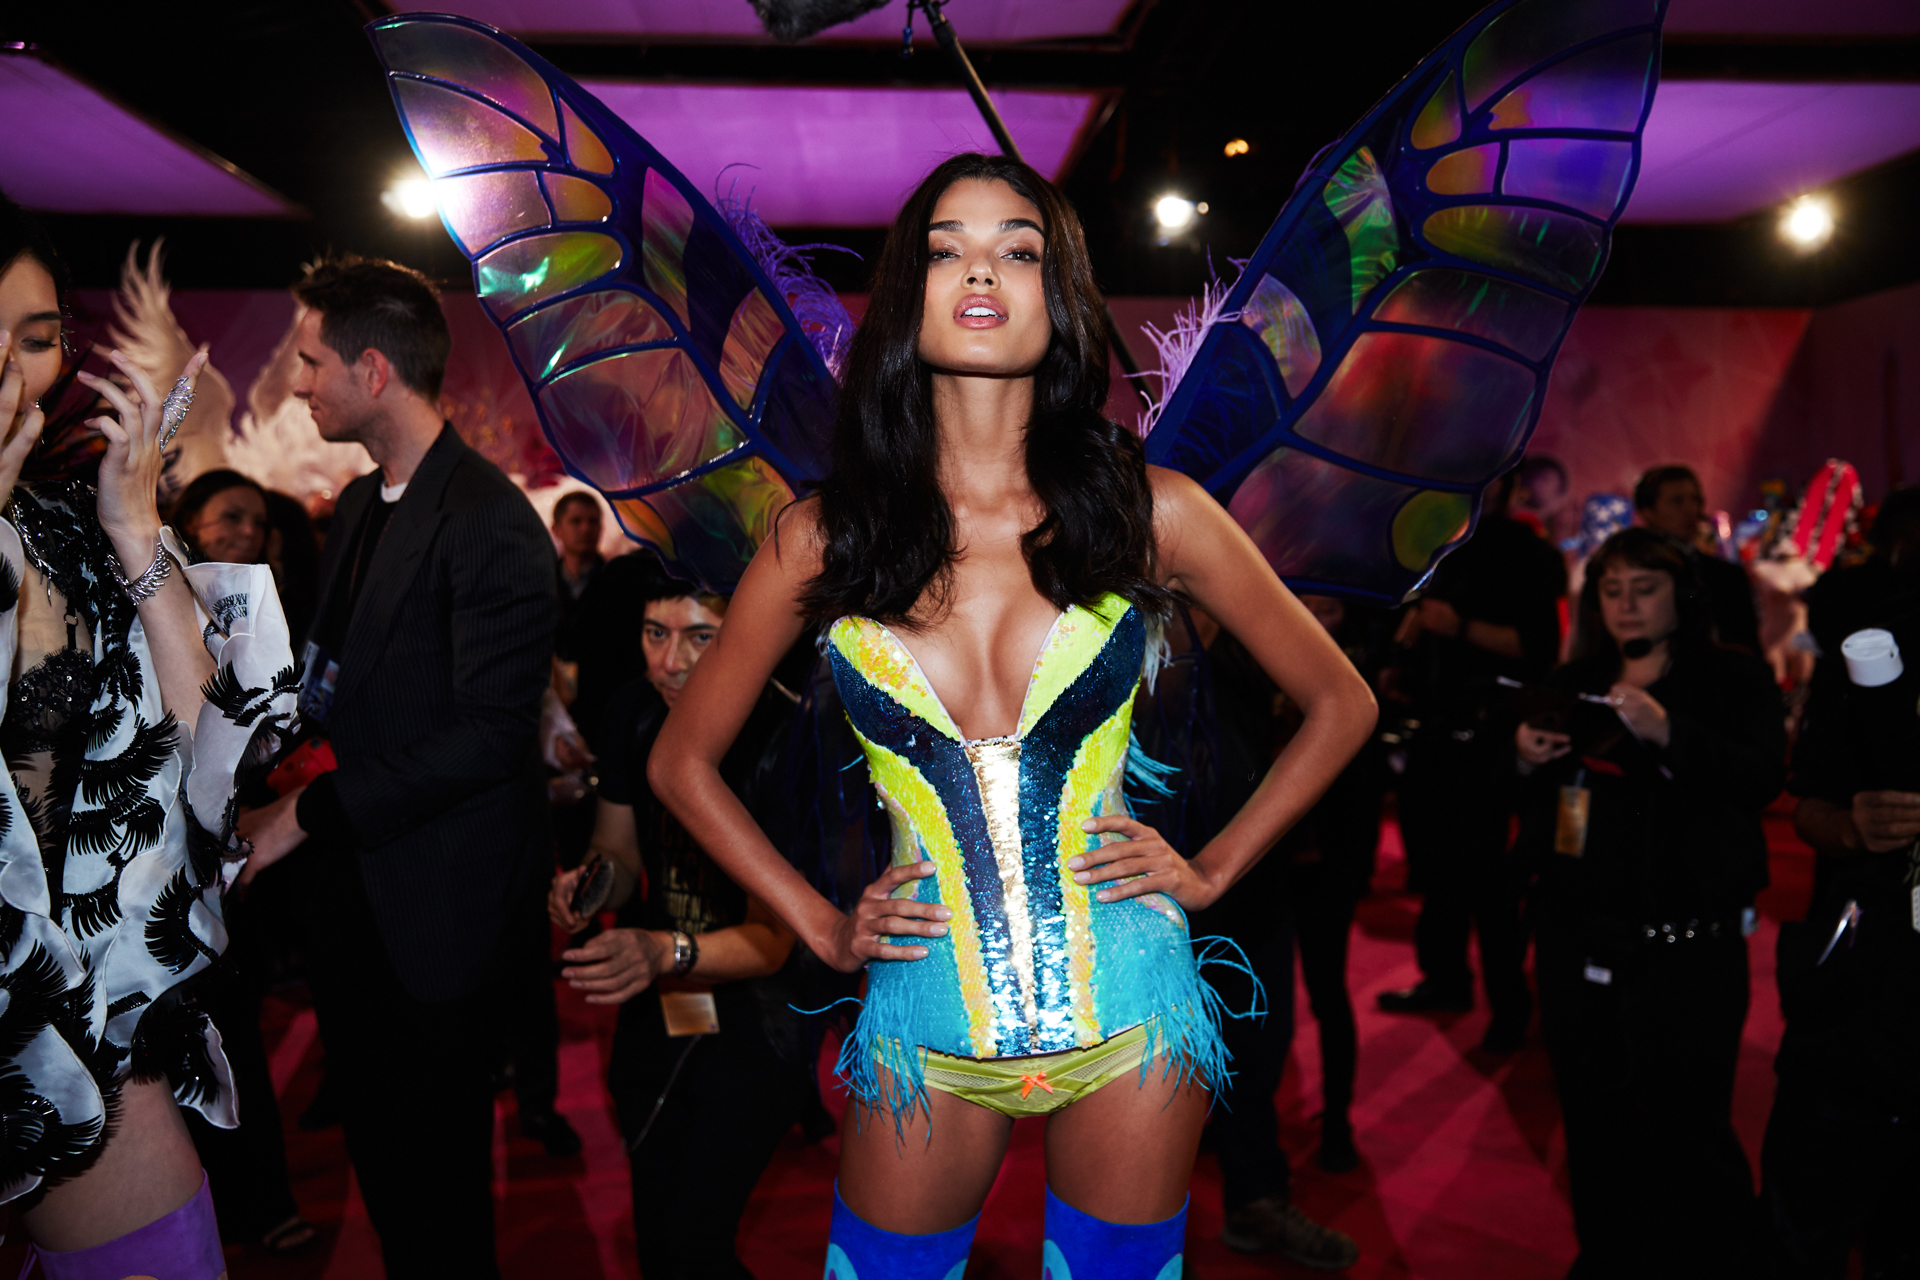 20_BTS_VSFashionShow16_65U5537-Edit.jpg